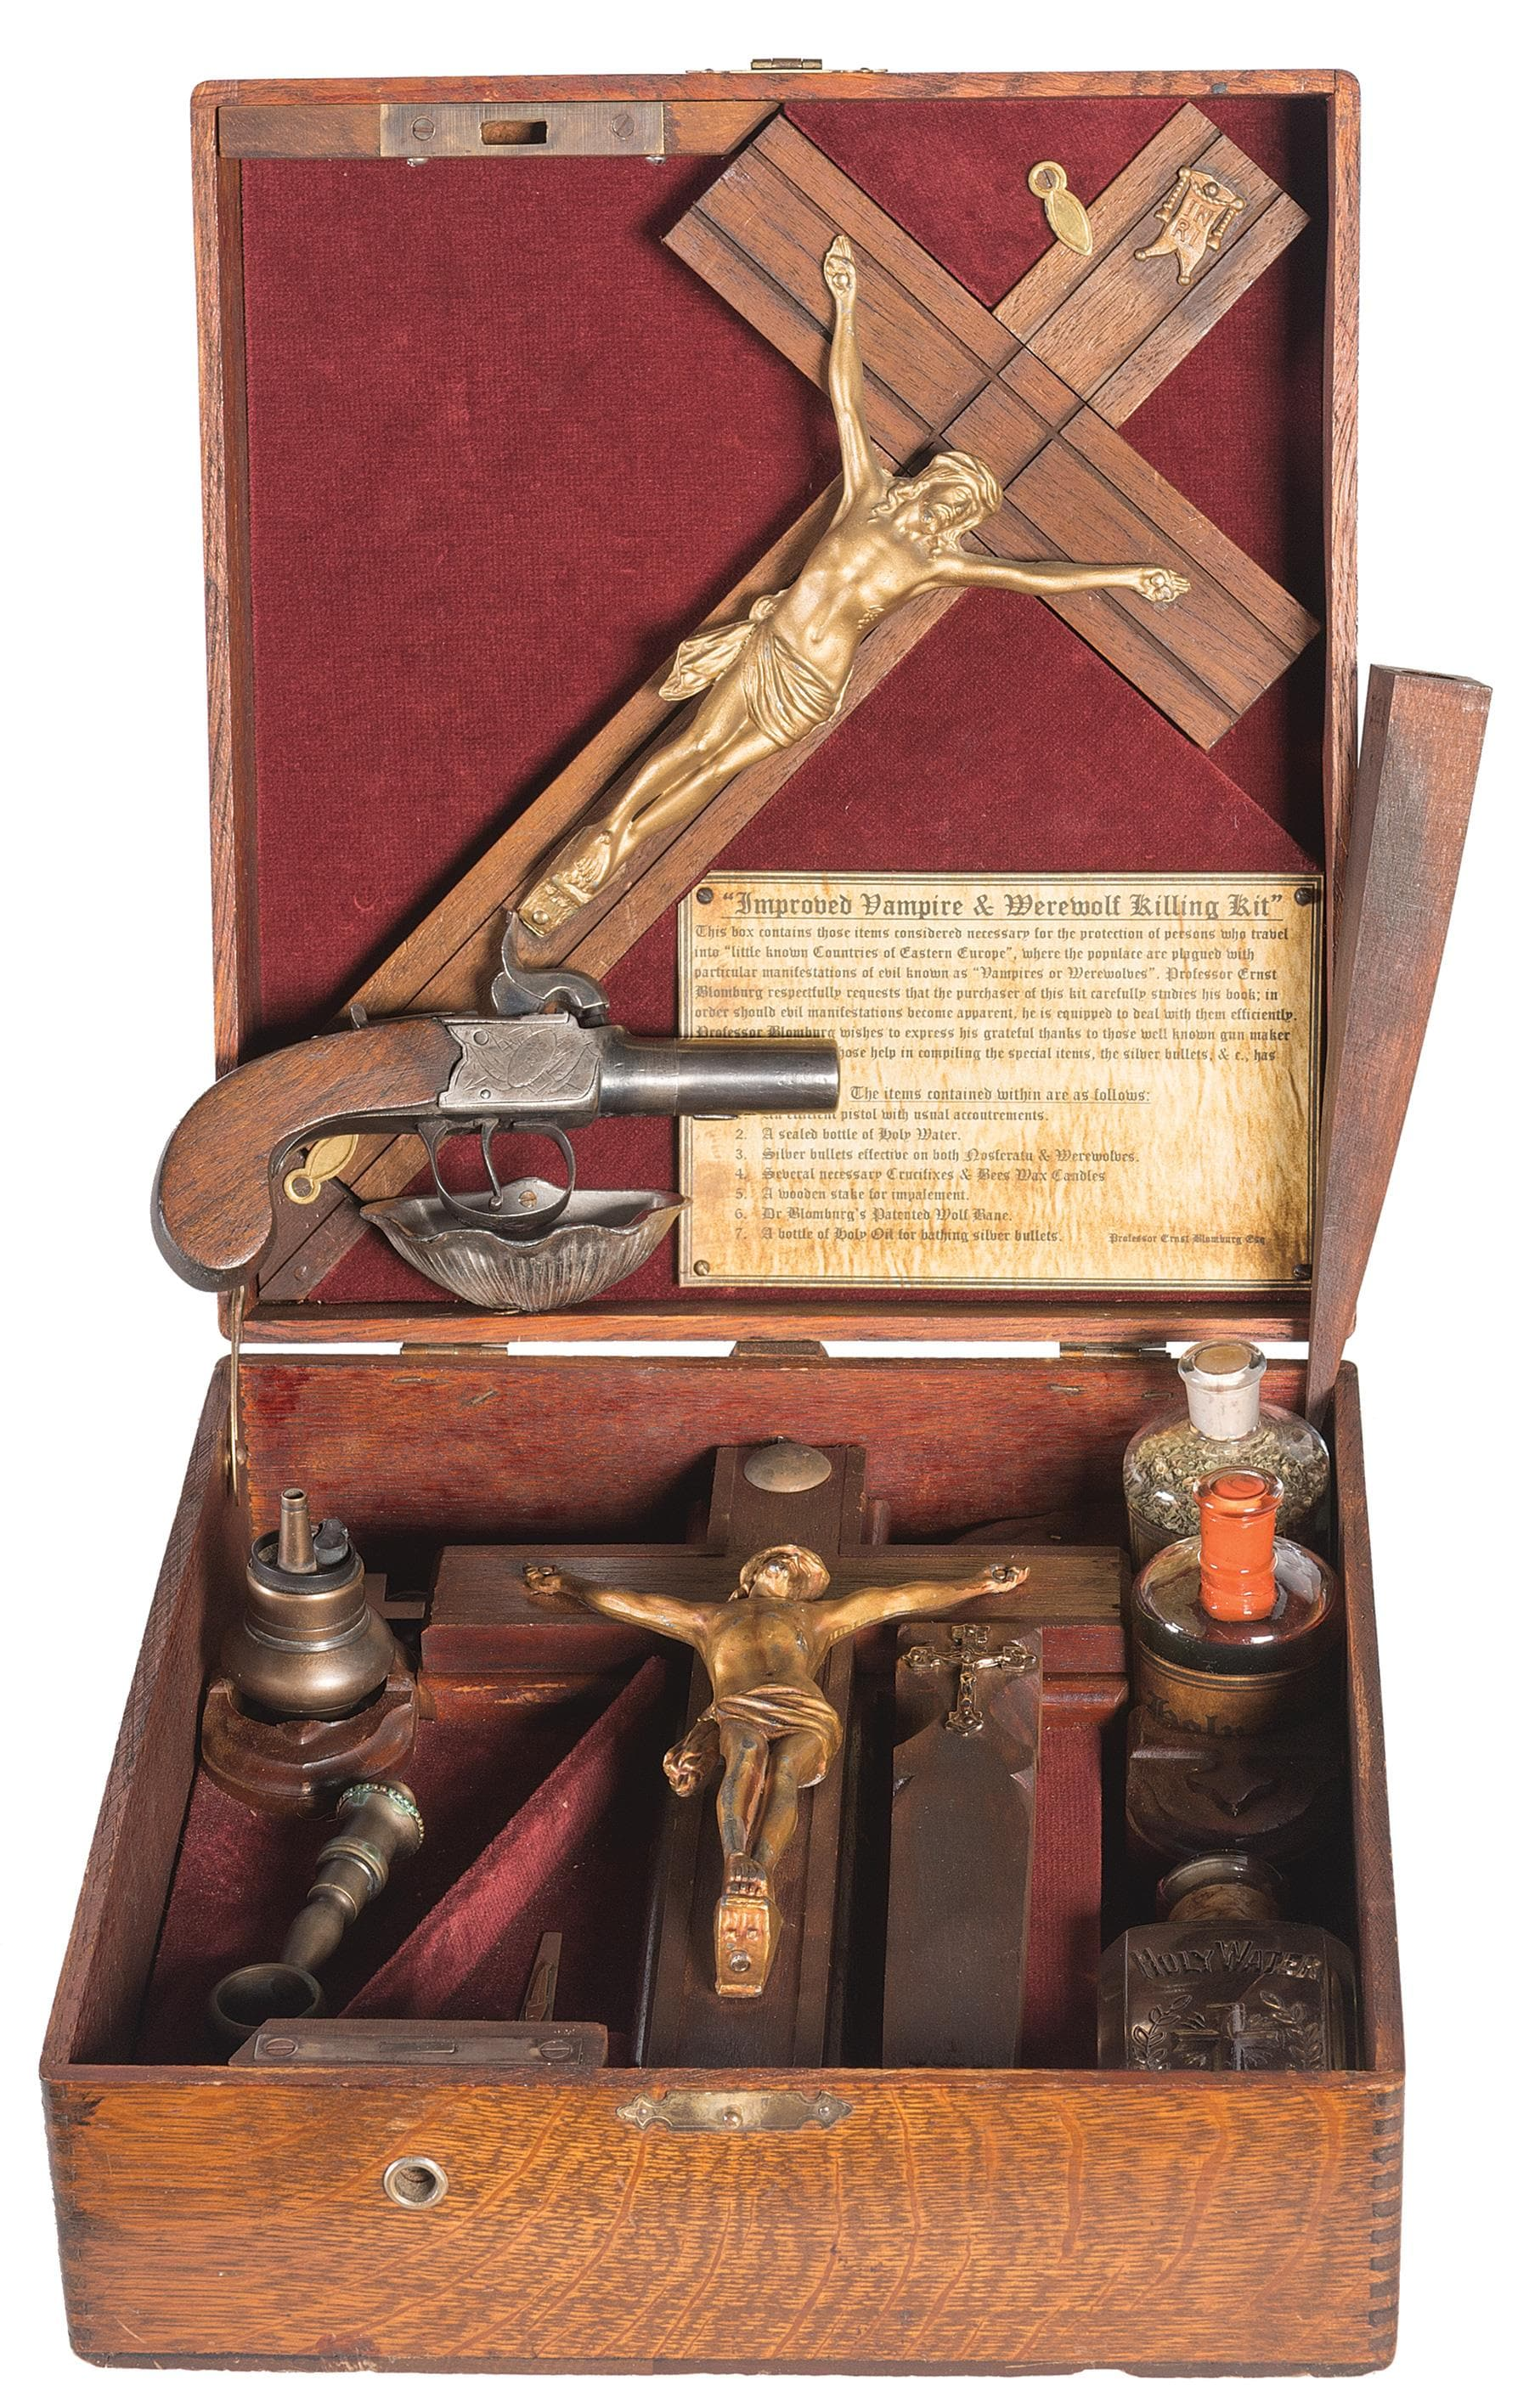 "This .44 caliber percussion Scott pistol sold by Rock Island included ""3 crucifixes (one cannot be too careful), bottle of black wolfsbane, bottle of holy oil, bottle of holy water, wooden stake and rosary."" It went for $2,875 https://www.rockislandauction.com/detail/1029/6102/vampire-and-werewolf-hunting-kit-with-percussion-pistol"